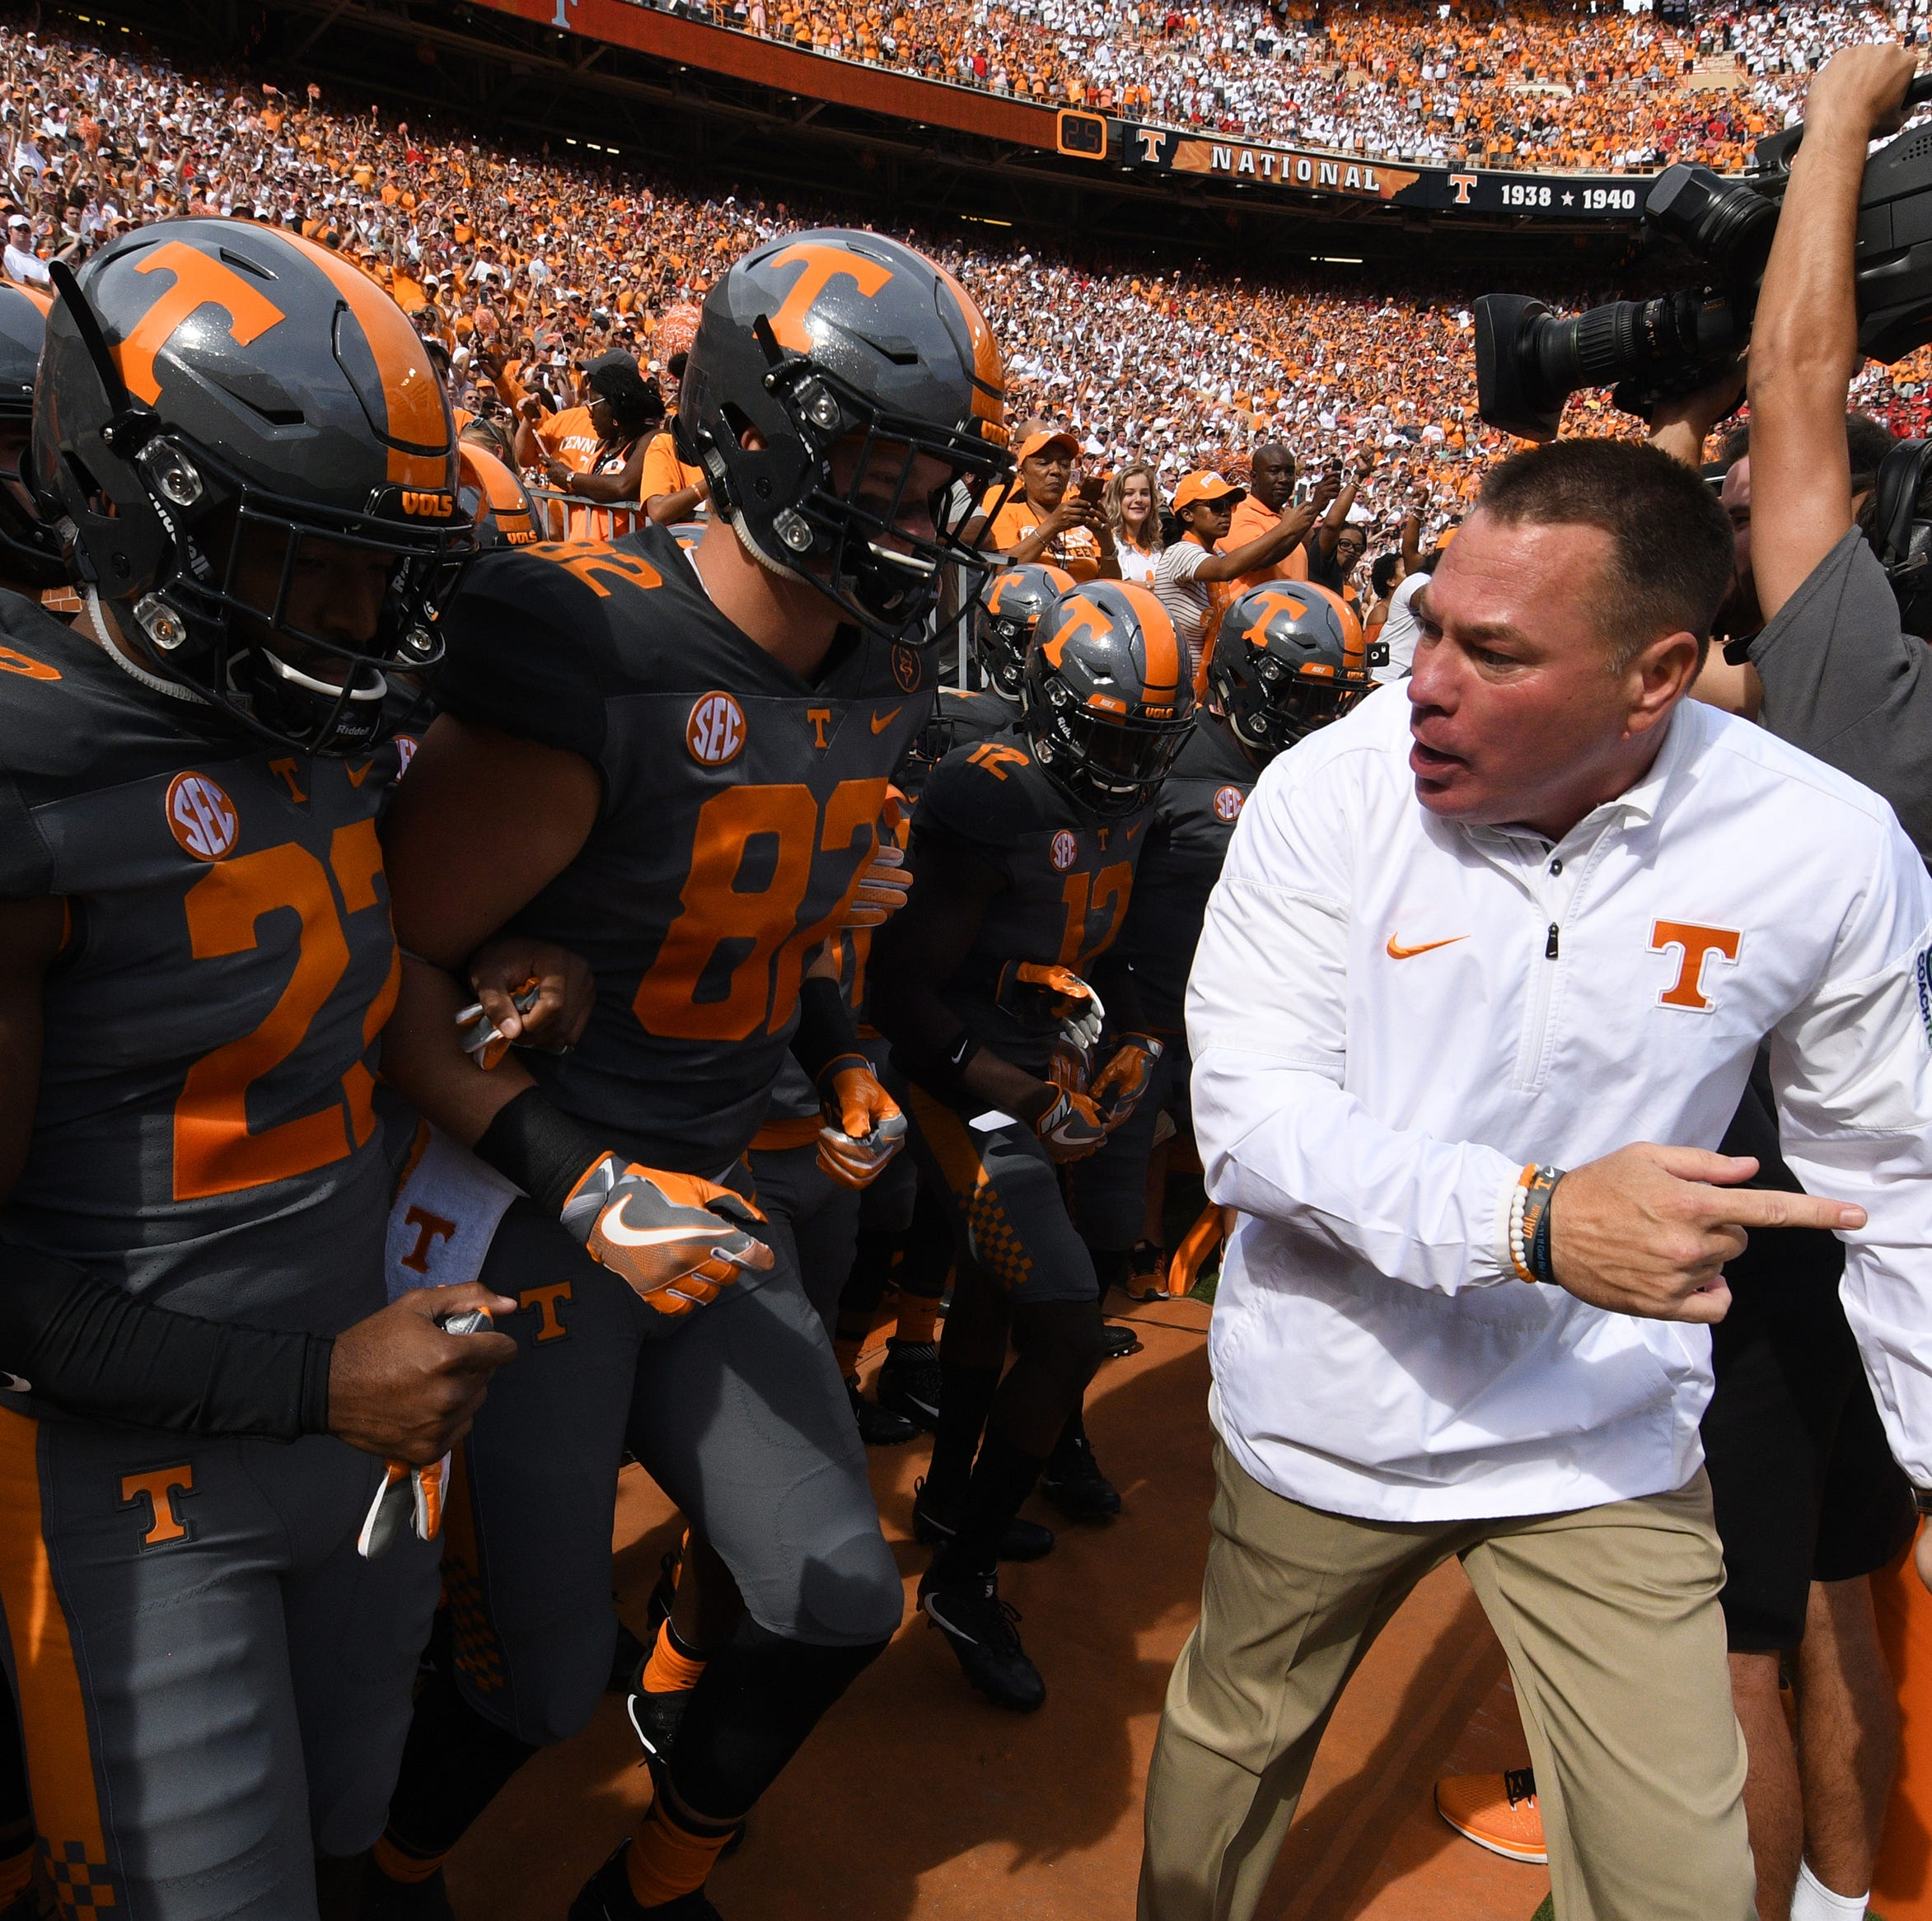 Butch Jones: One year anniversary of UT Vols firing football coach